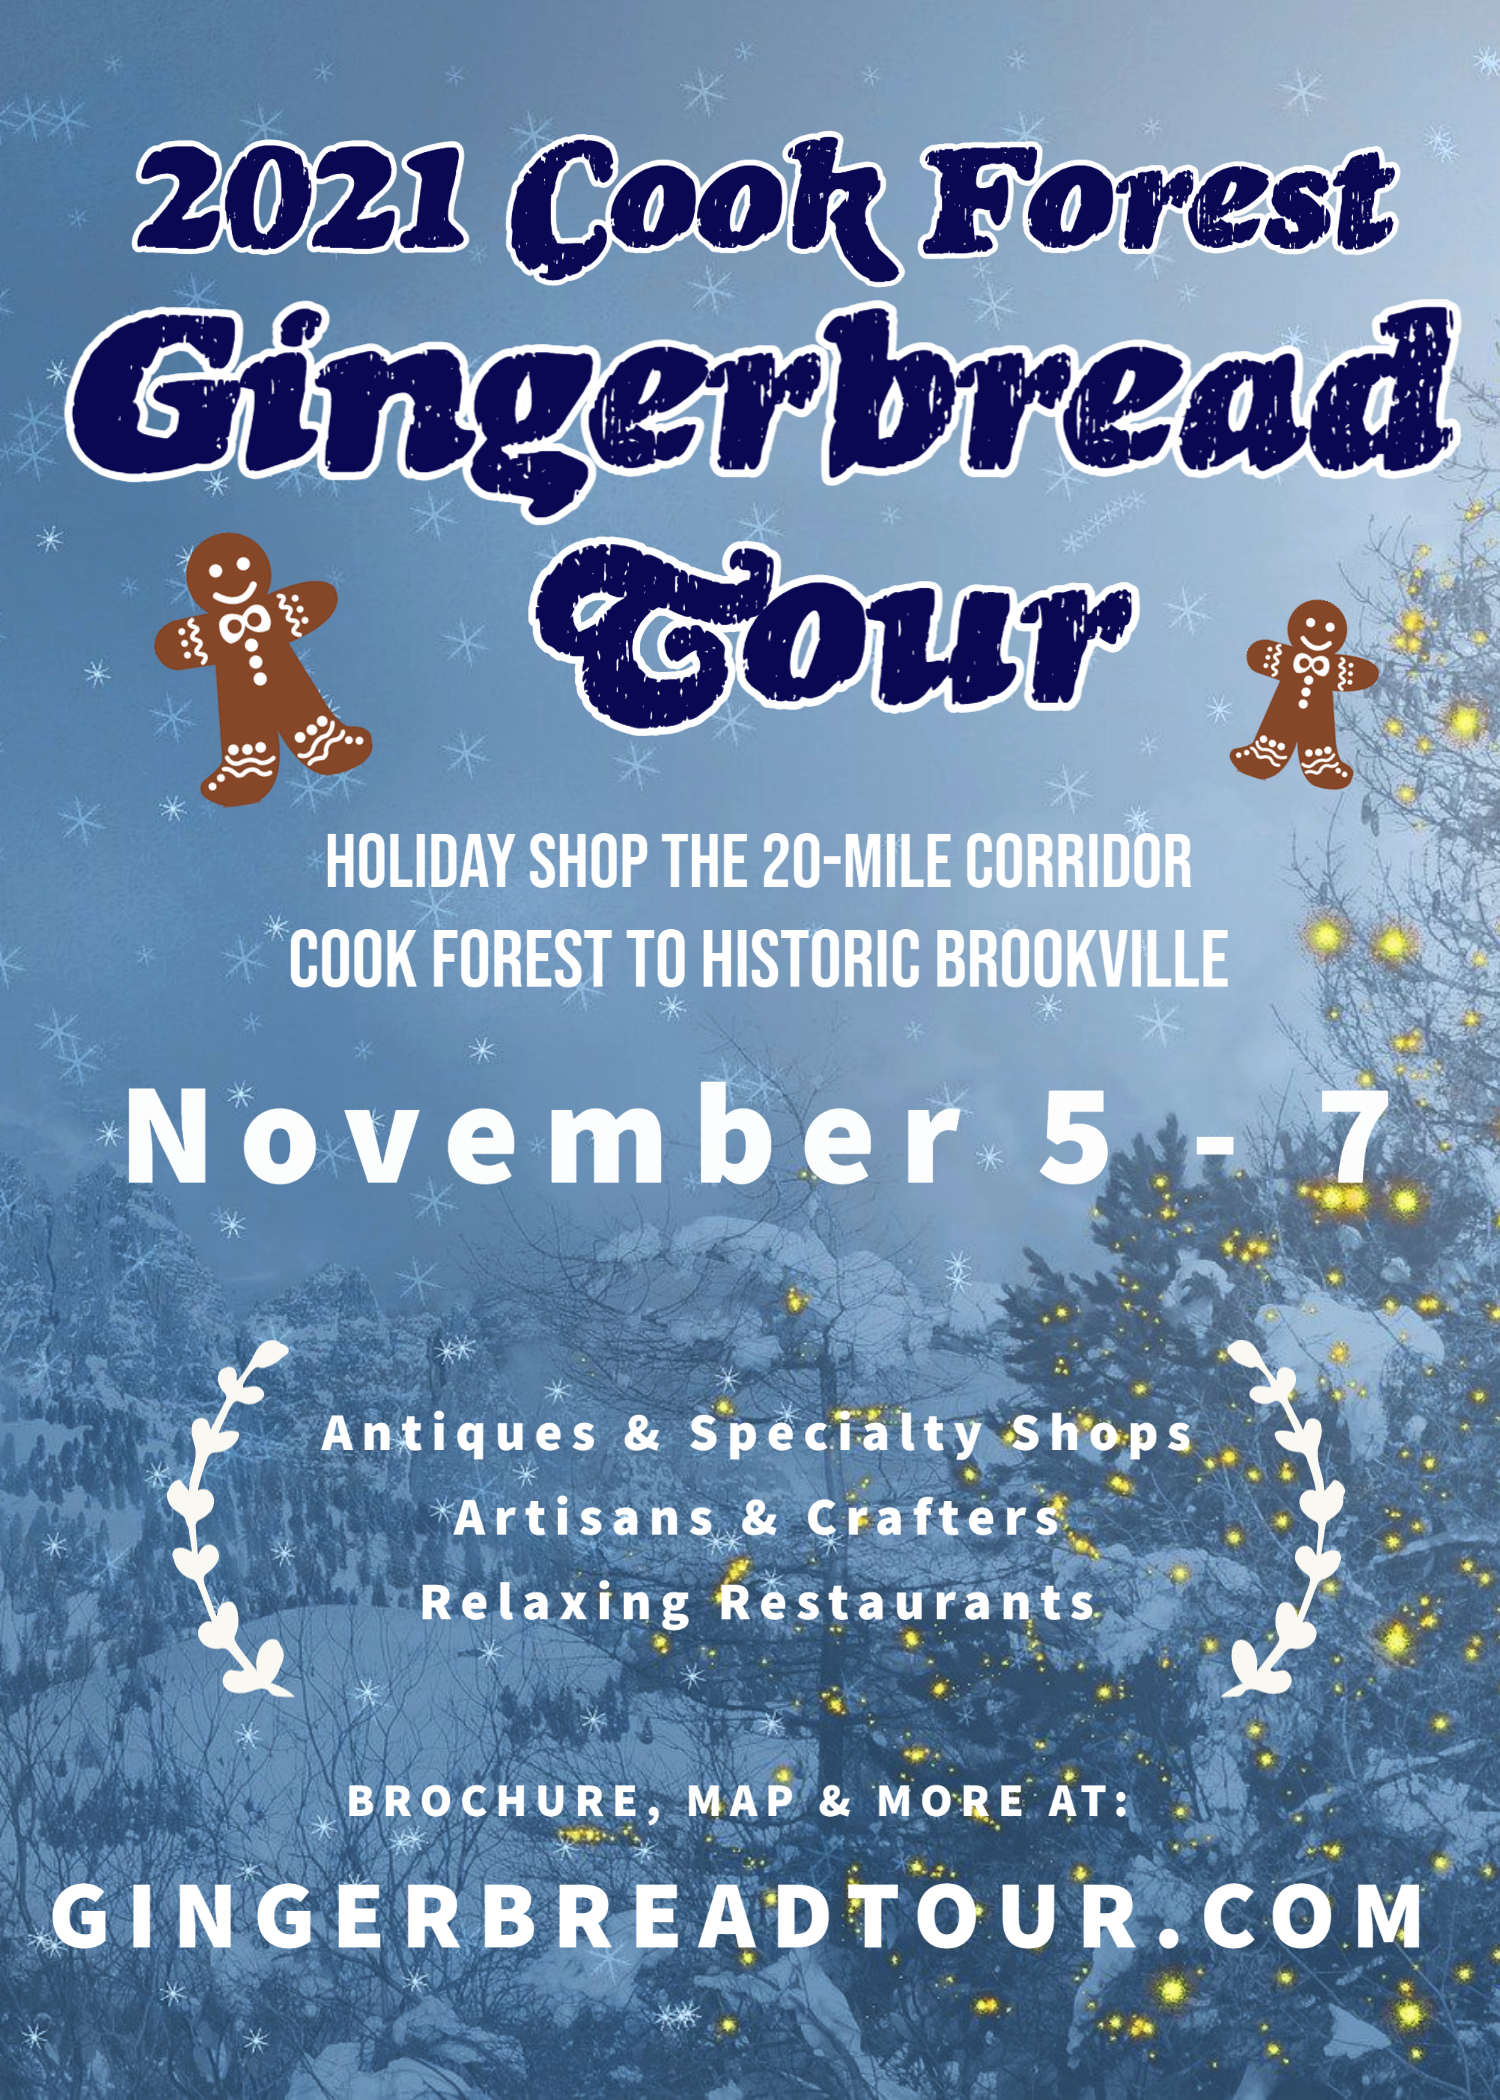 2021 Gingerbread Tour Flyer